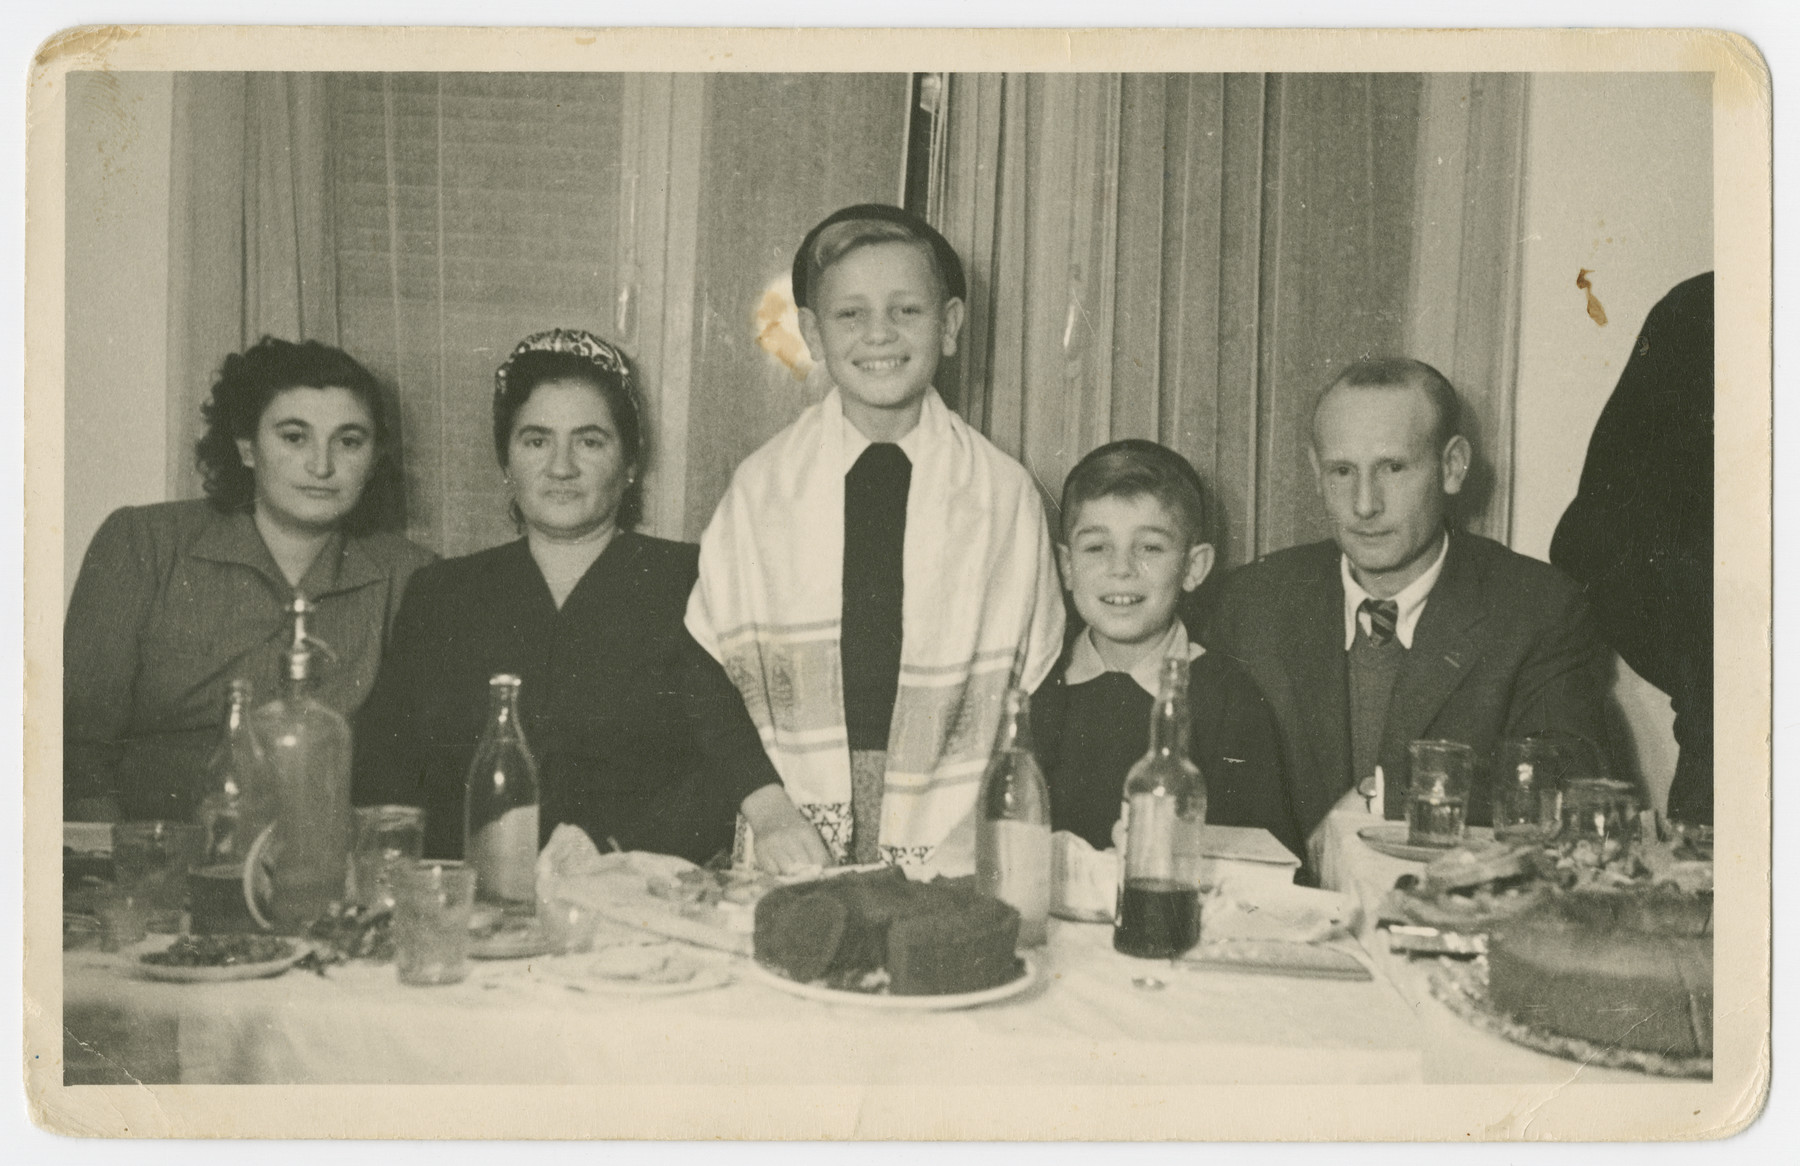 Yitzchak Weinberg celebrate his bar mitzvah with his relatives.  From left to right are Rivke Kupfer Weinberg, Ruche Wullinger (a greataunt), Yitzchak Weinberg, Alter Weinberg and Hircsh Mayer Weinberg. Yitzchak, Alter and Hirsch Mayer all escaped Poland through the Kalb rescue mission.